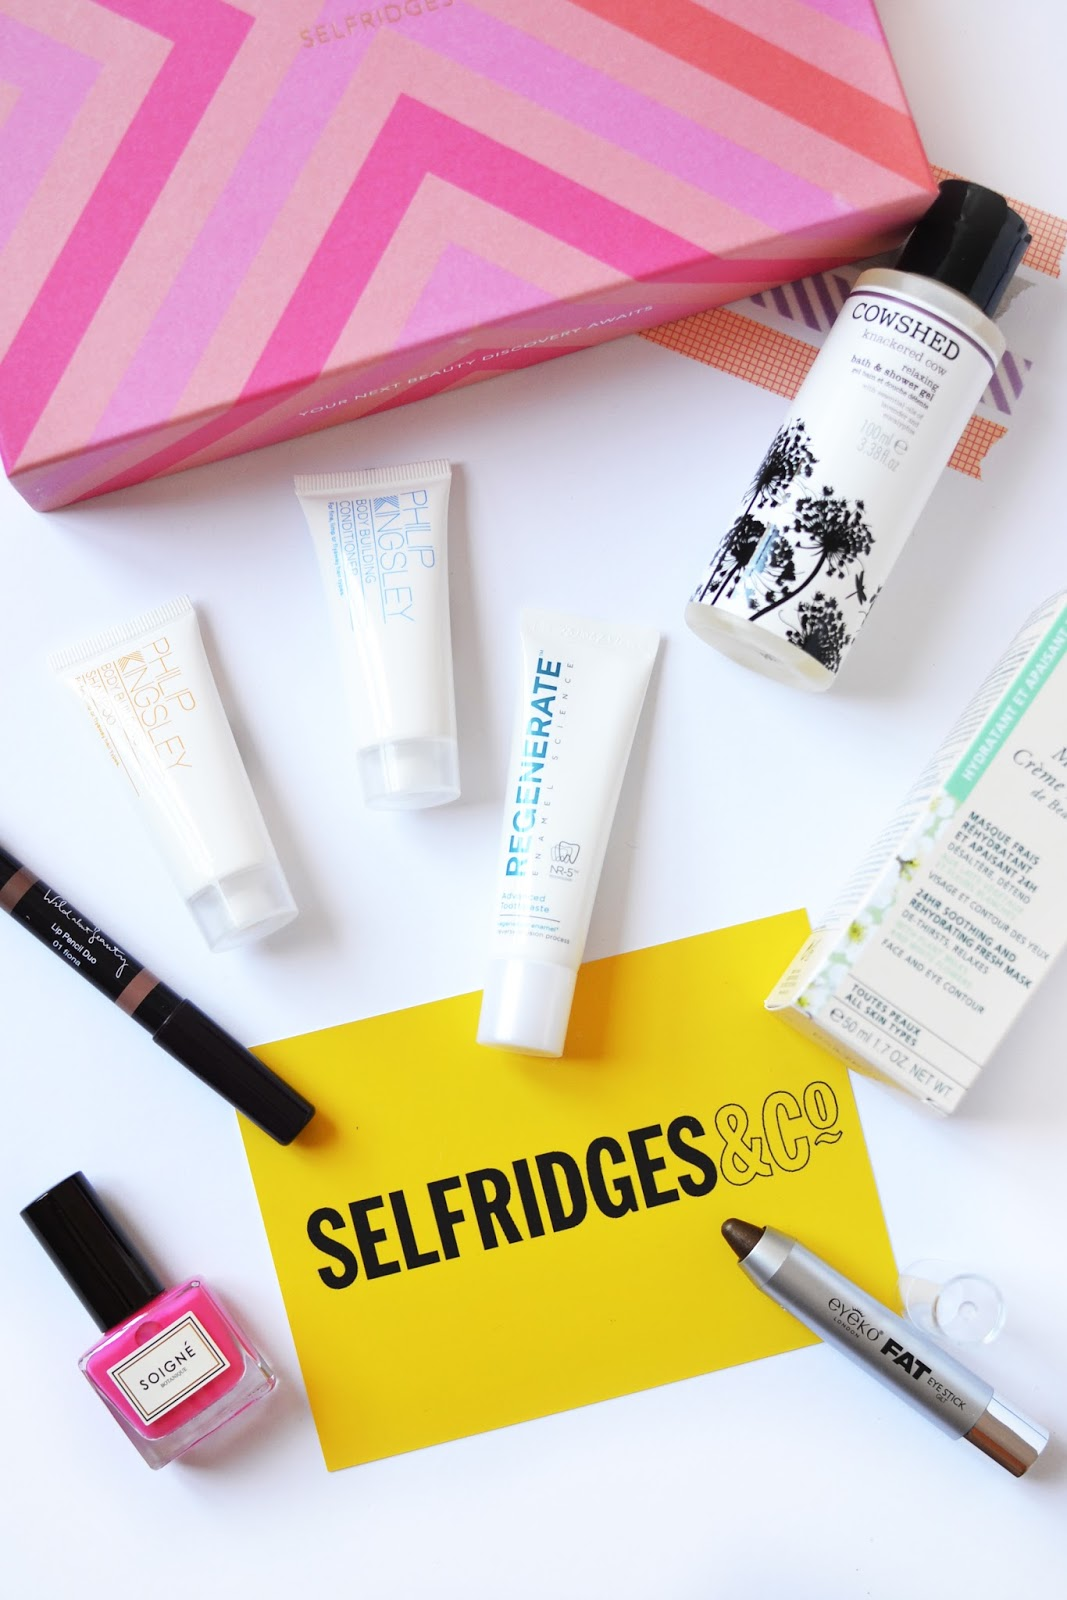 A limited edition birchbox with selfridges